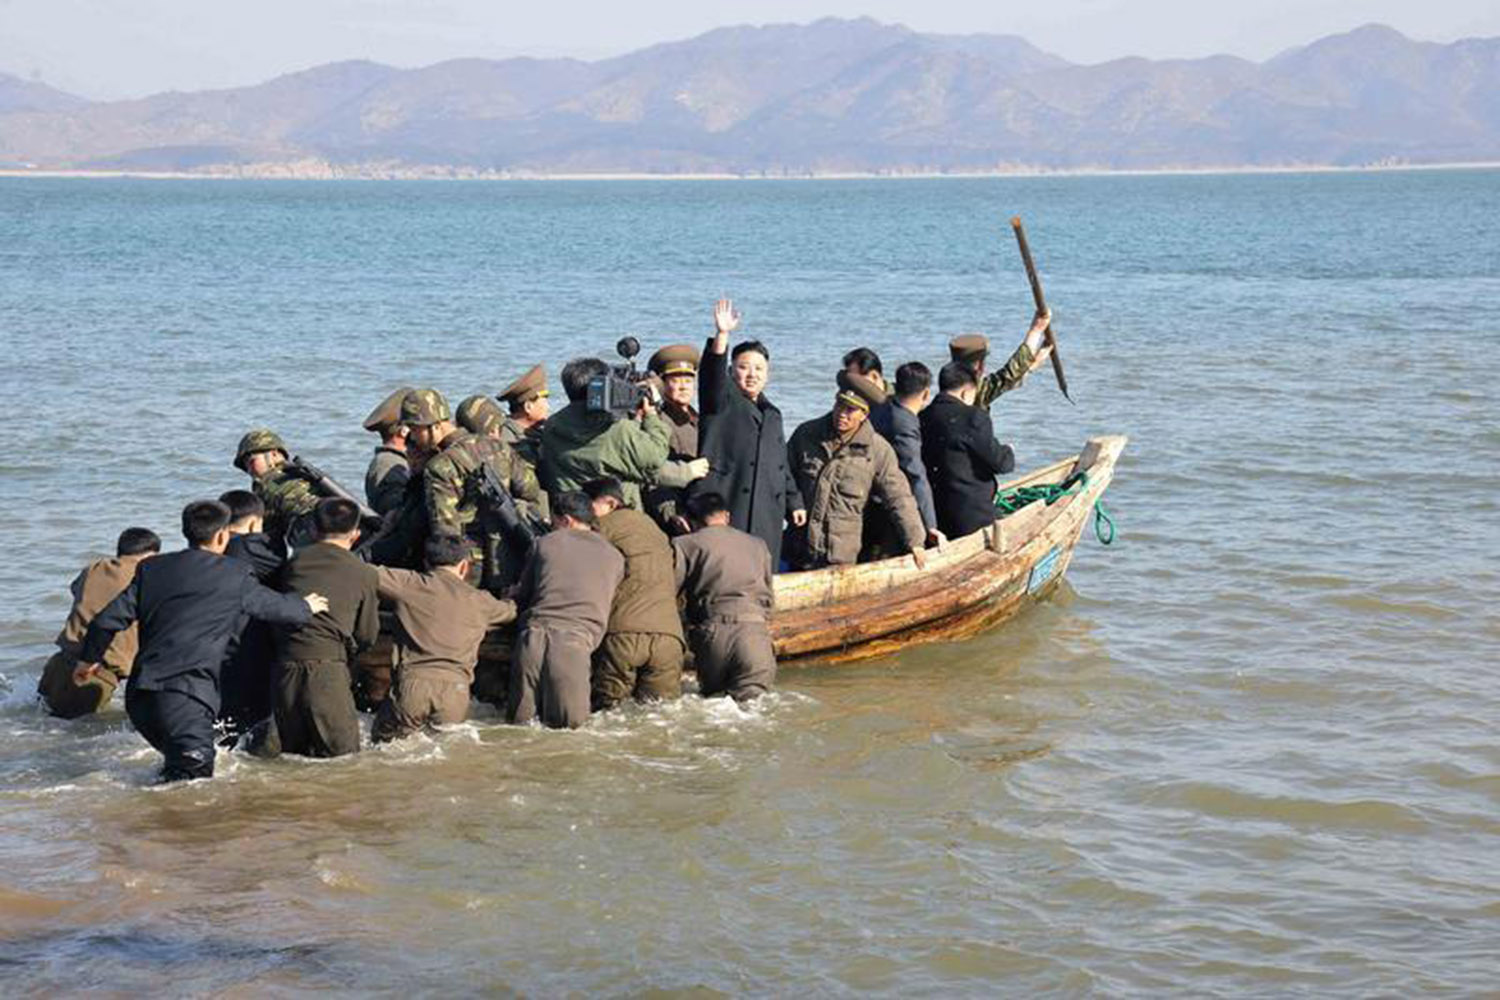 March 11, 2013. In this photo provided by North Korea's official KCNA news agency in Pyongyang, North Korean leader Kim Jong-Un (C) waves while in a boat during his visit to the Wolnae Islet Defense Detachment in the western sector of the front line, which is near Baengnyeong Island of South Korea.